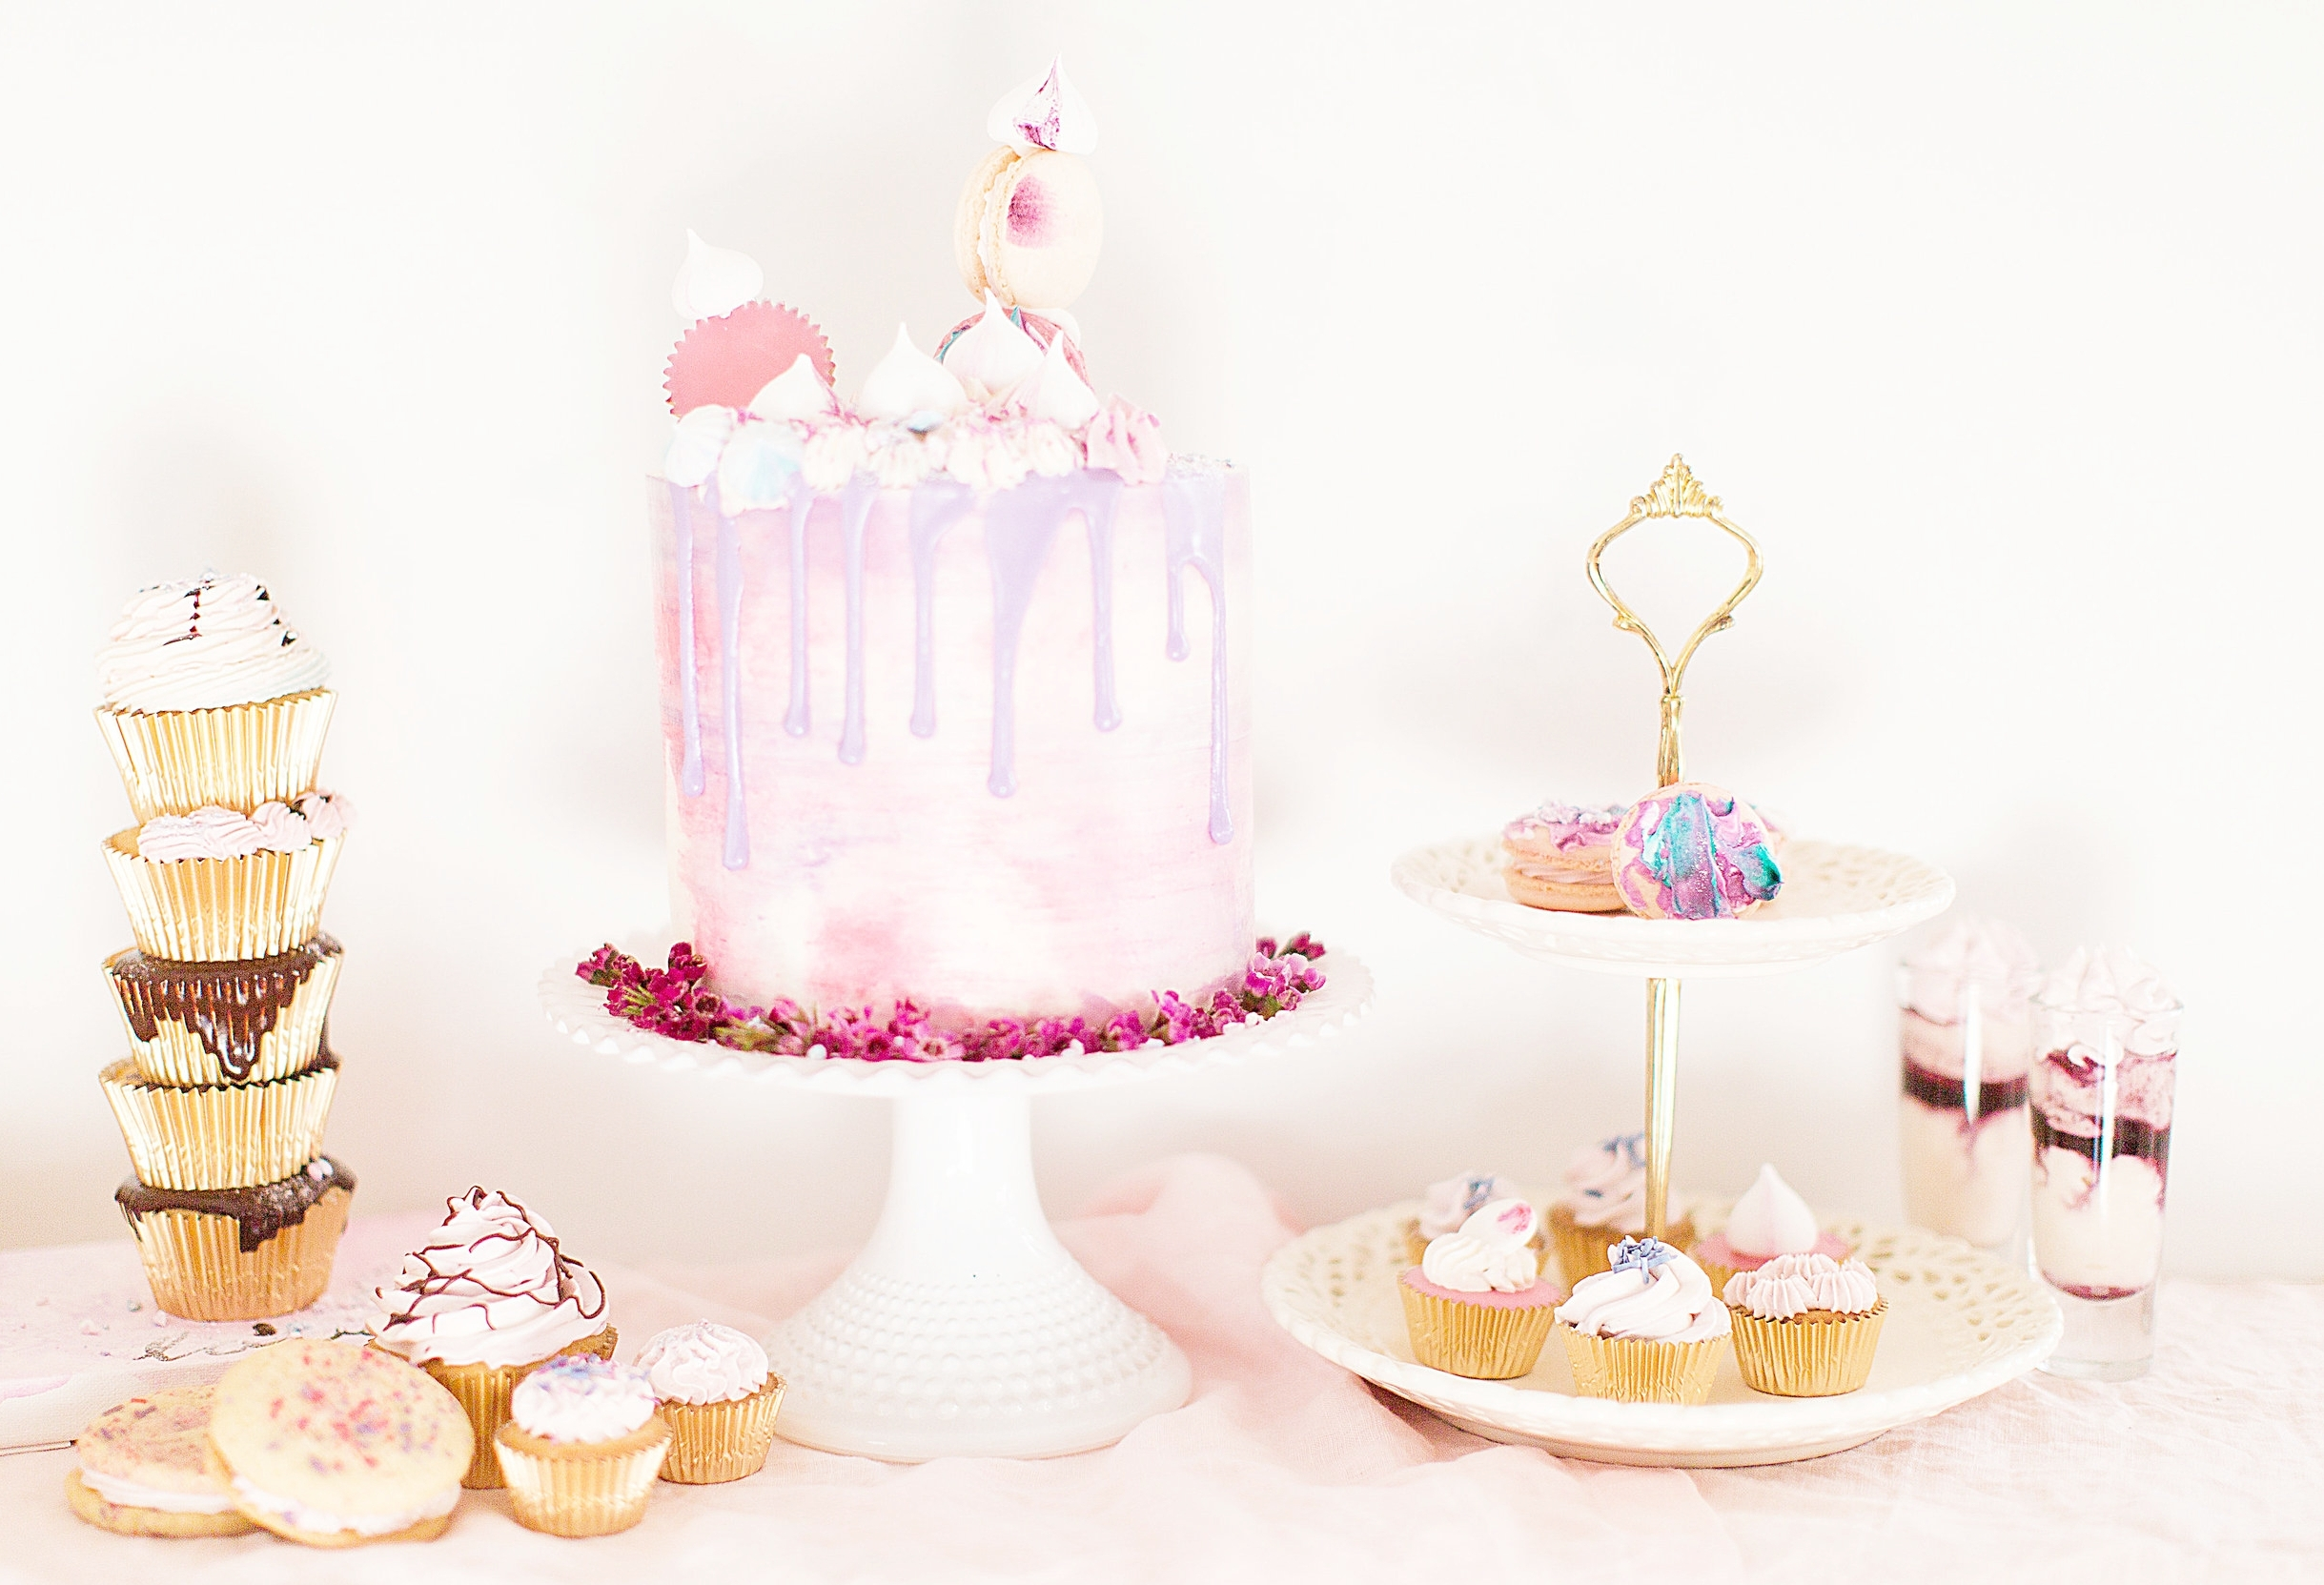 Here's a shot of most of the products that were included that day. A tall drip cake, cupcakes, mini cupcakes, macarons, cookie sandwiches, and dessert shooters. Perfect photography by  Emily Katharine Photography .